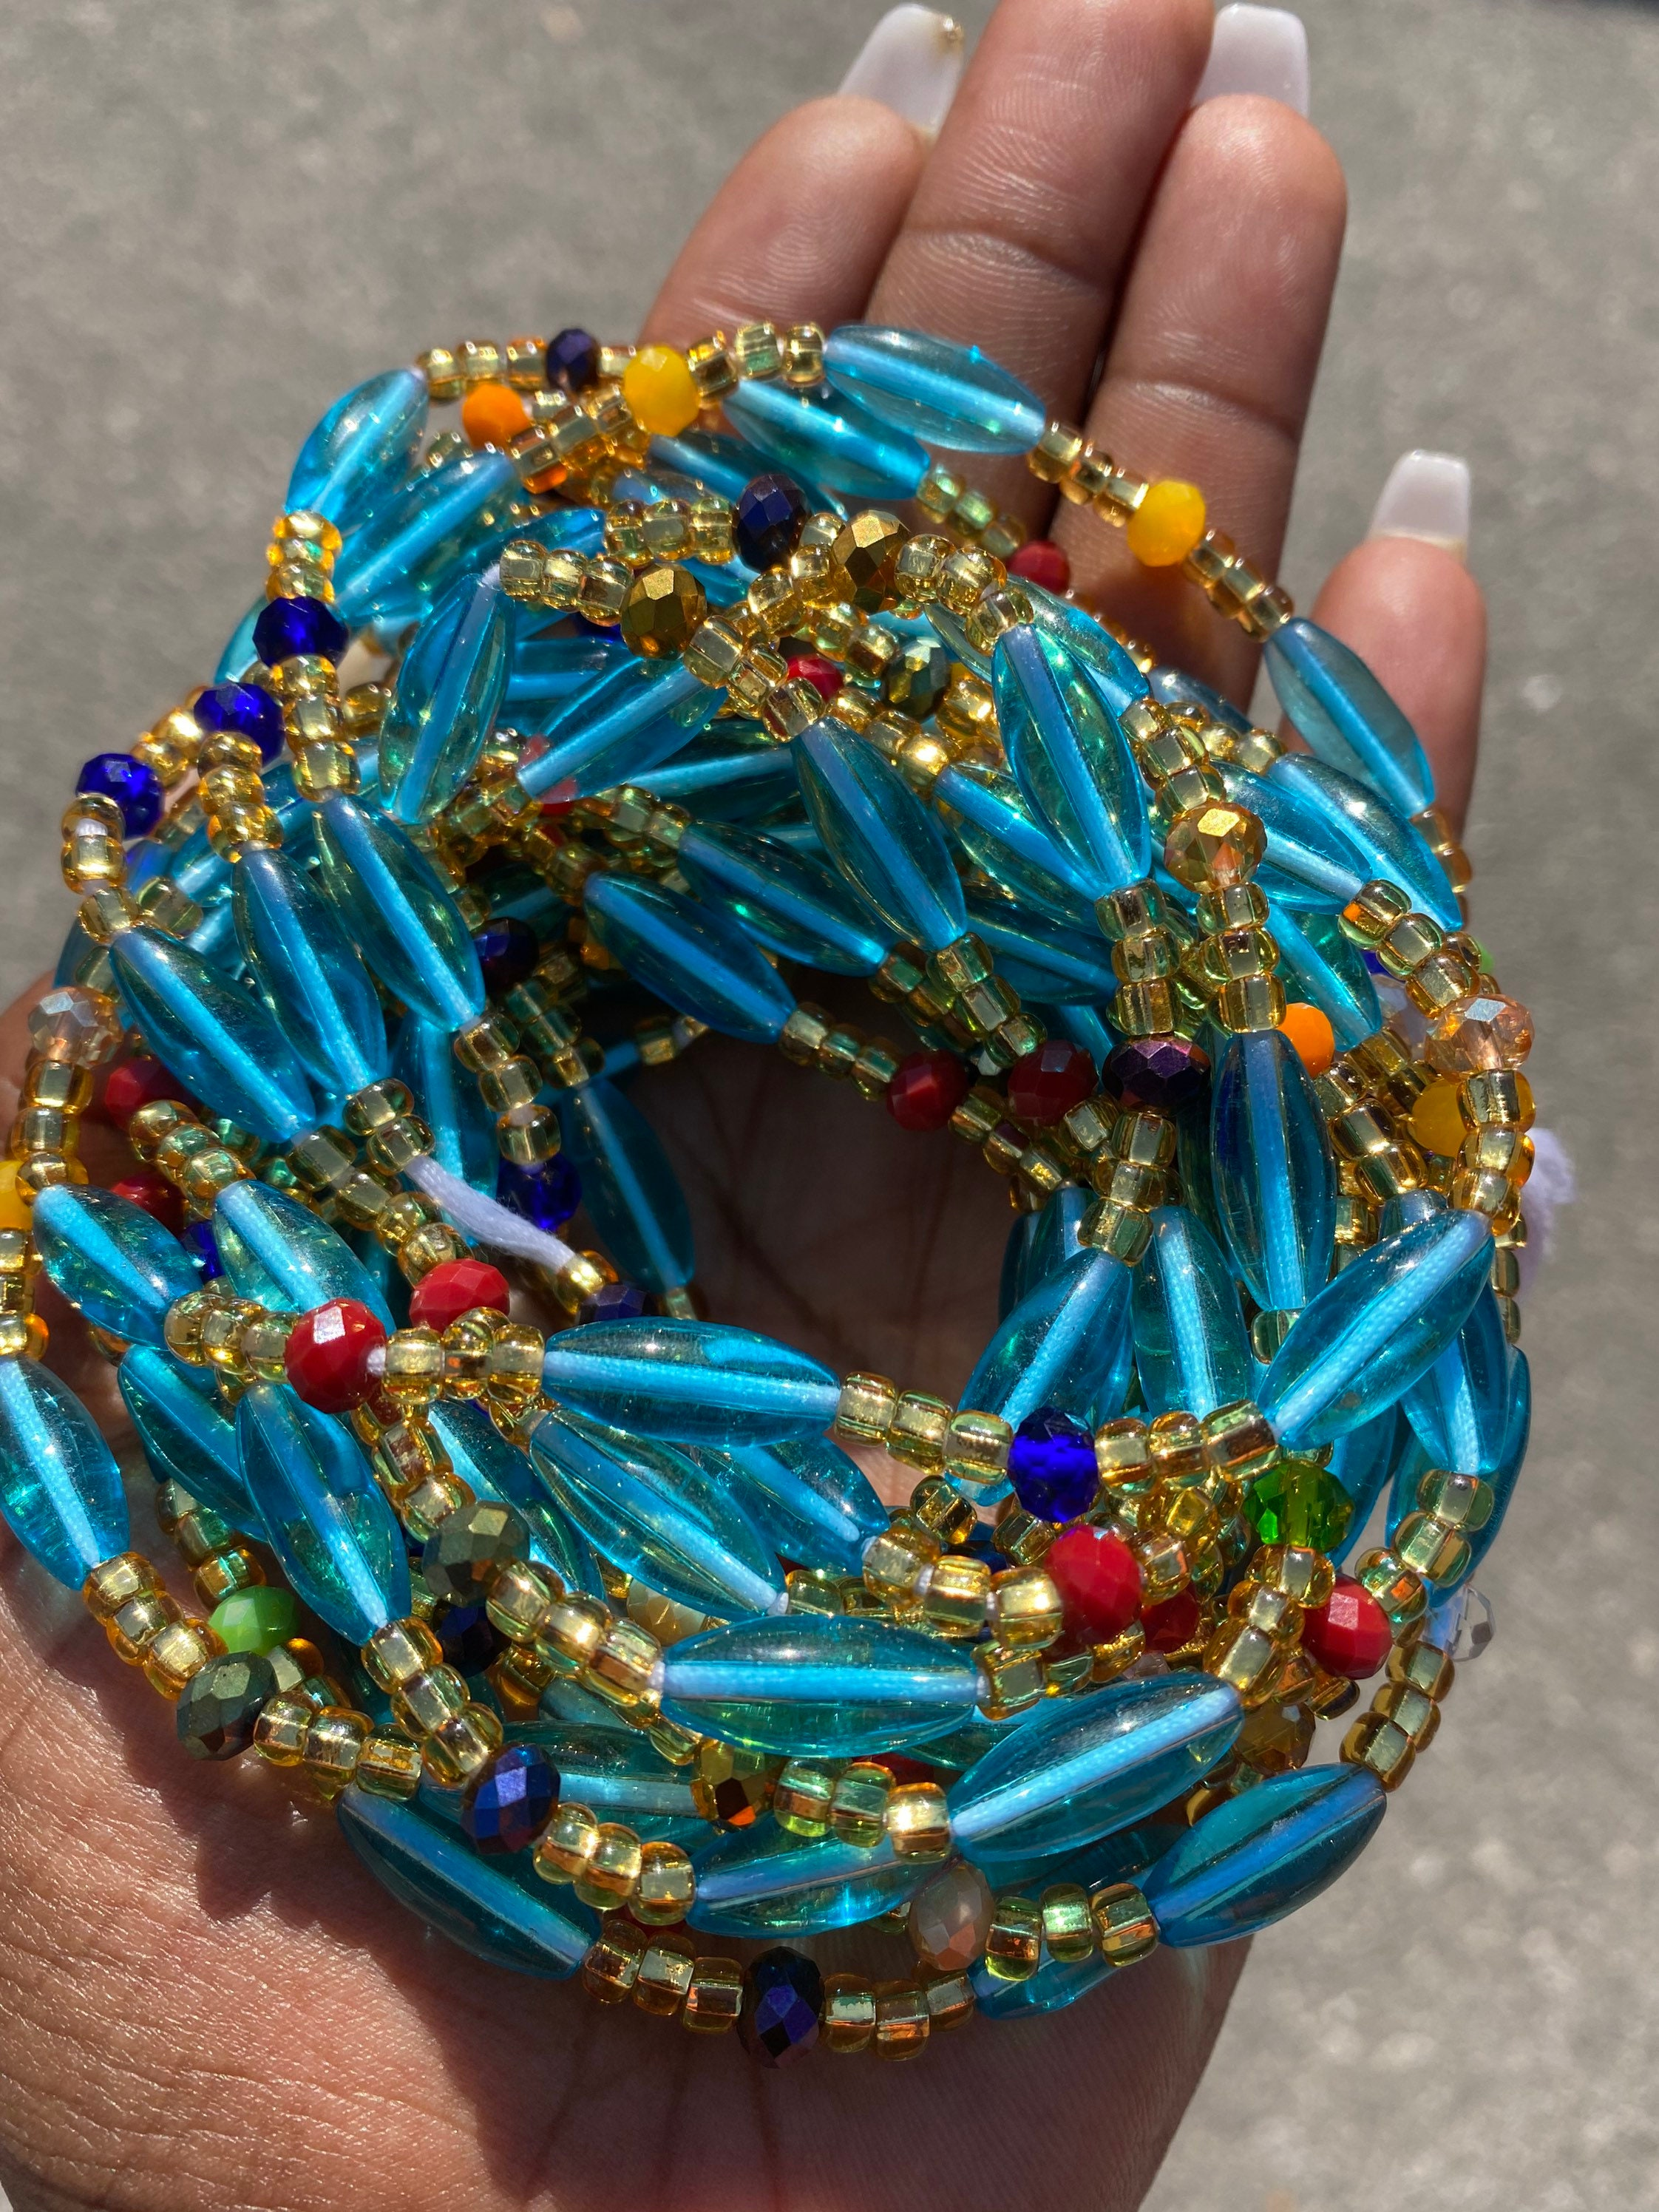 Sizable Seed Beads Blue Waist Beads Beaded Belly Chain African Waist Beads